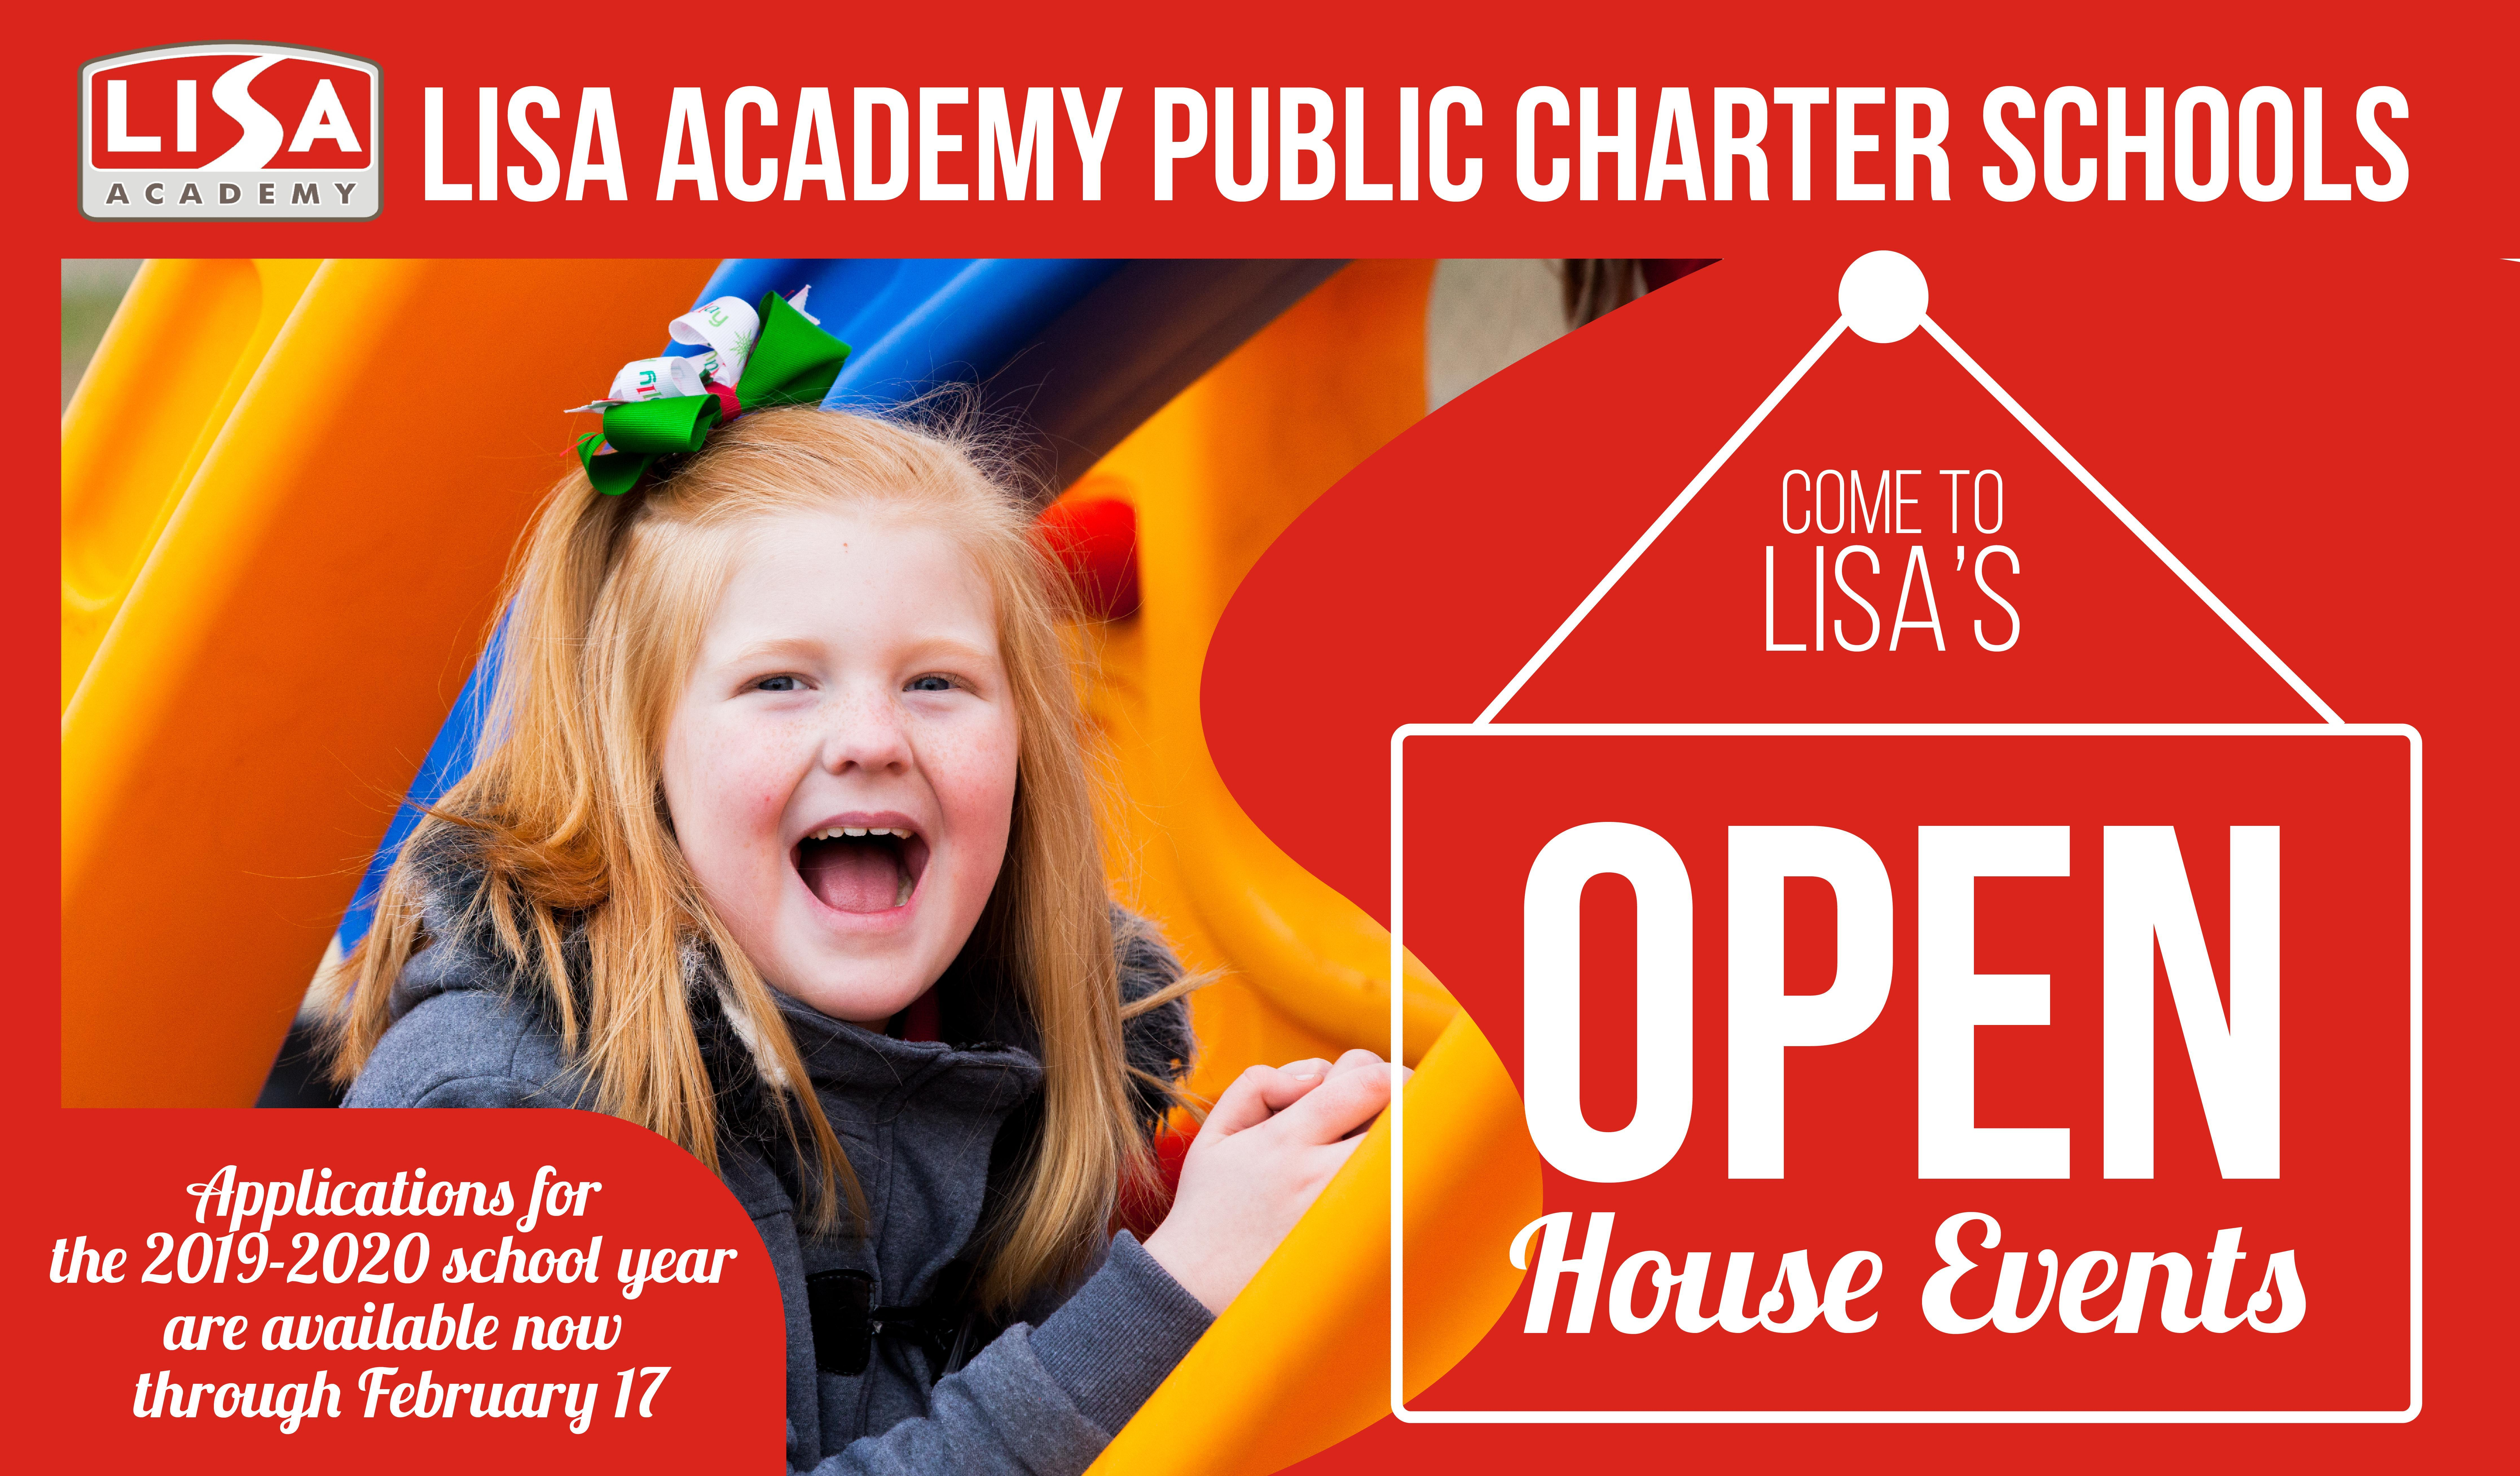 Our Open House days are December 12, 2018, at 8:30 am January 16, 2019, at 8:30 am February 9, 2019, at 9:00 am